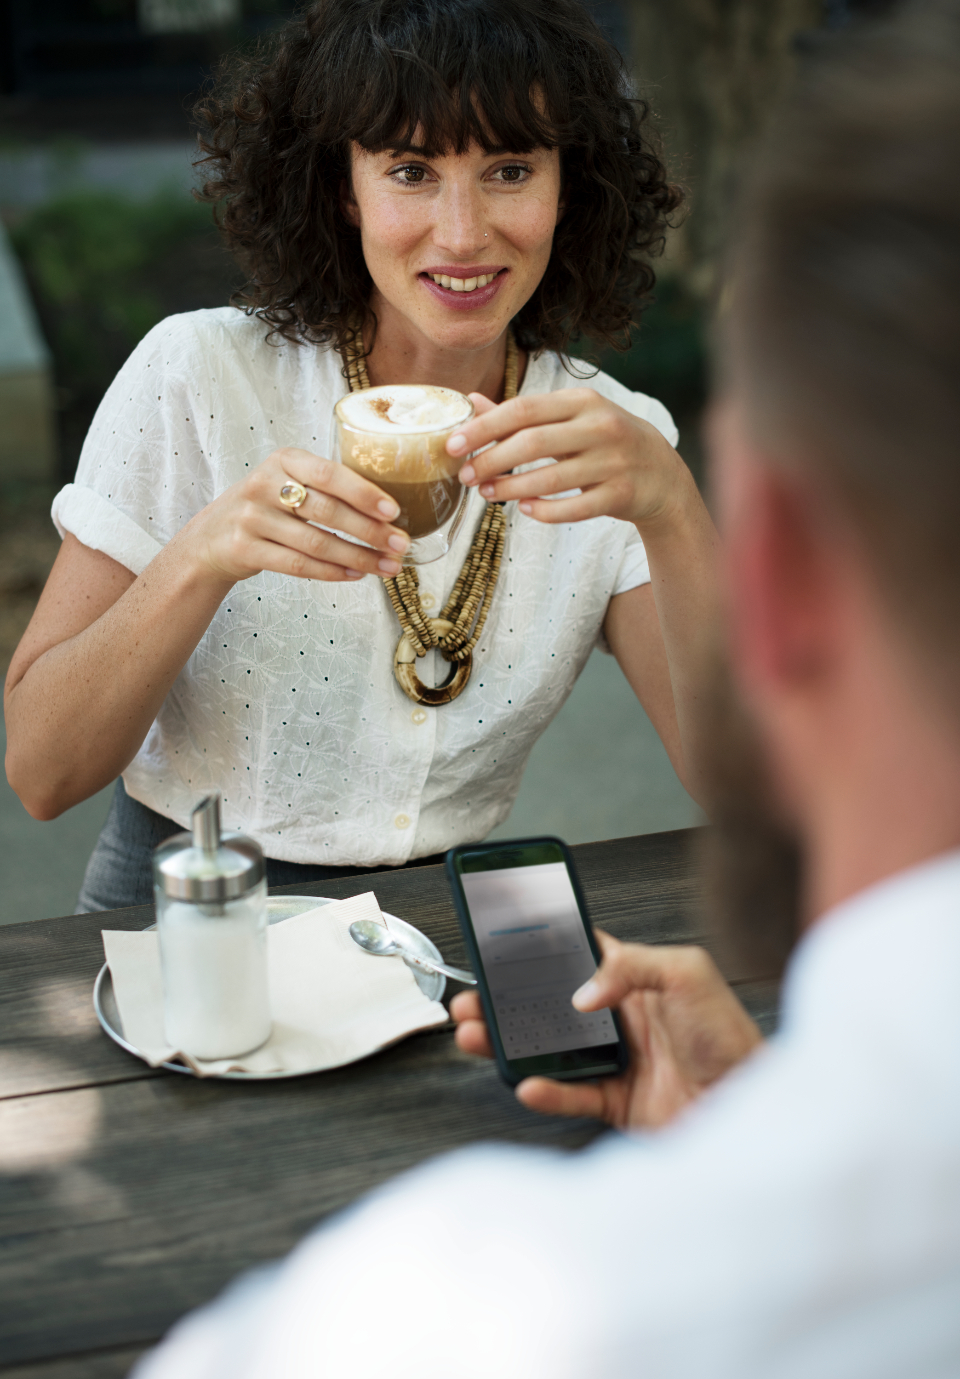 cup drinks coffee shop business online friends deal mobile phone friendship networking connection communication coffee agreement brainstorming togetherness table talking corporate beverage planning meeting cafe internet team woma